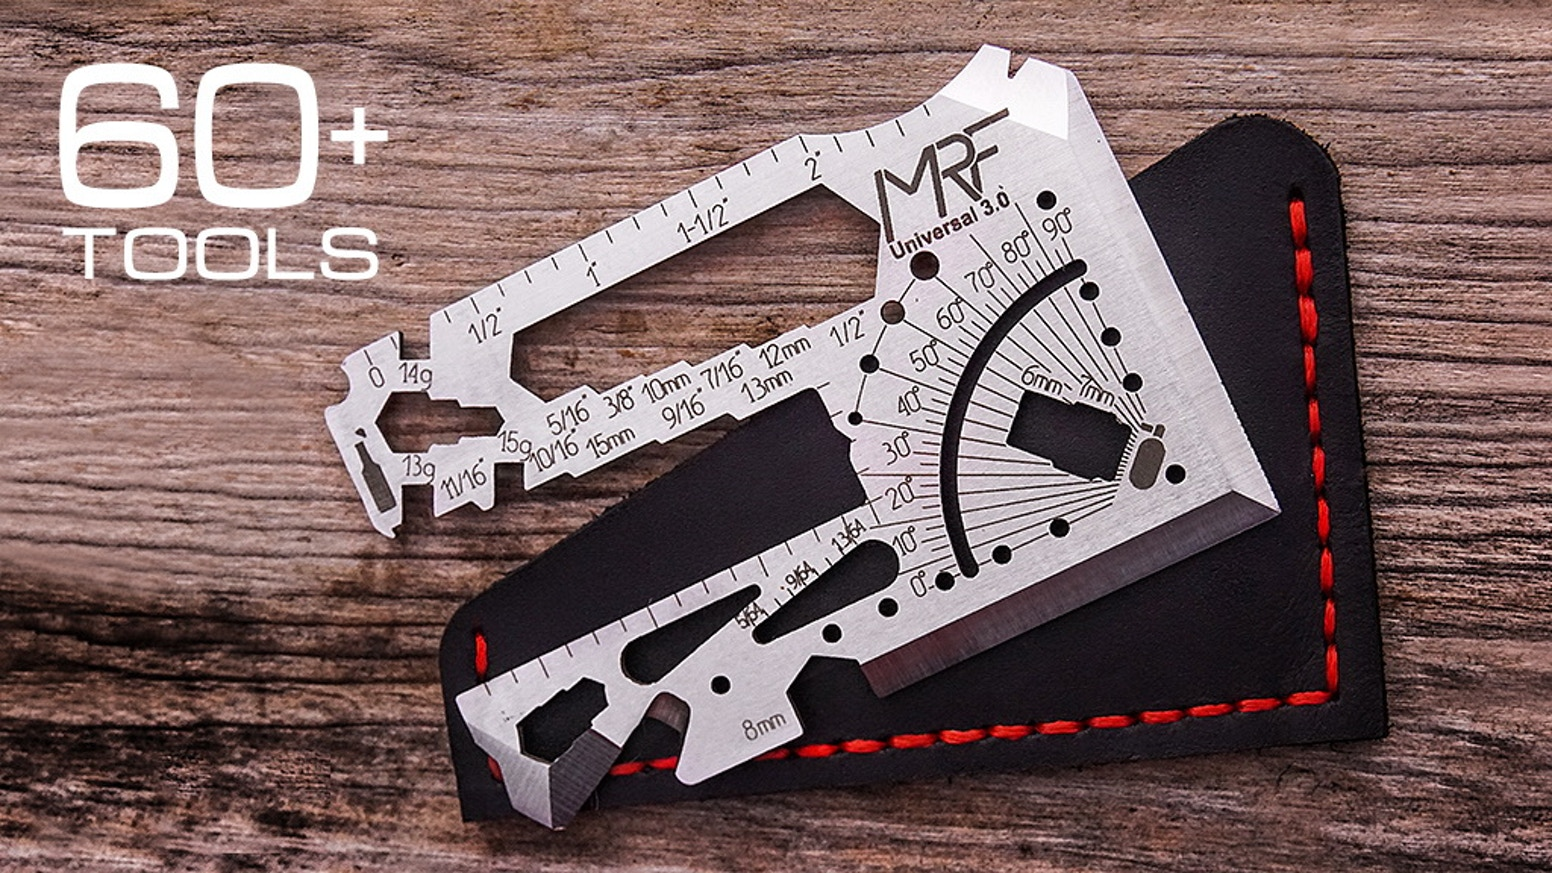 EDC Tool Card with 60+tools in One. The most Multi Functional Minimalistic Gear. Knife, Survival Axe, Sundial, Wrenches